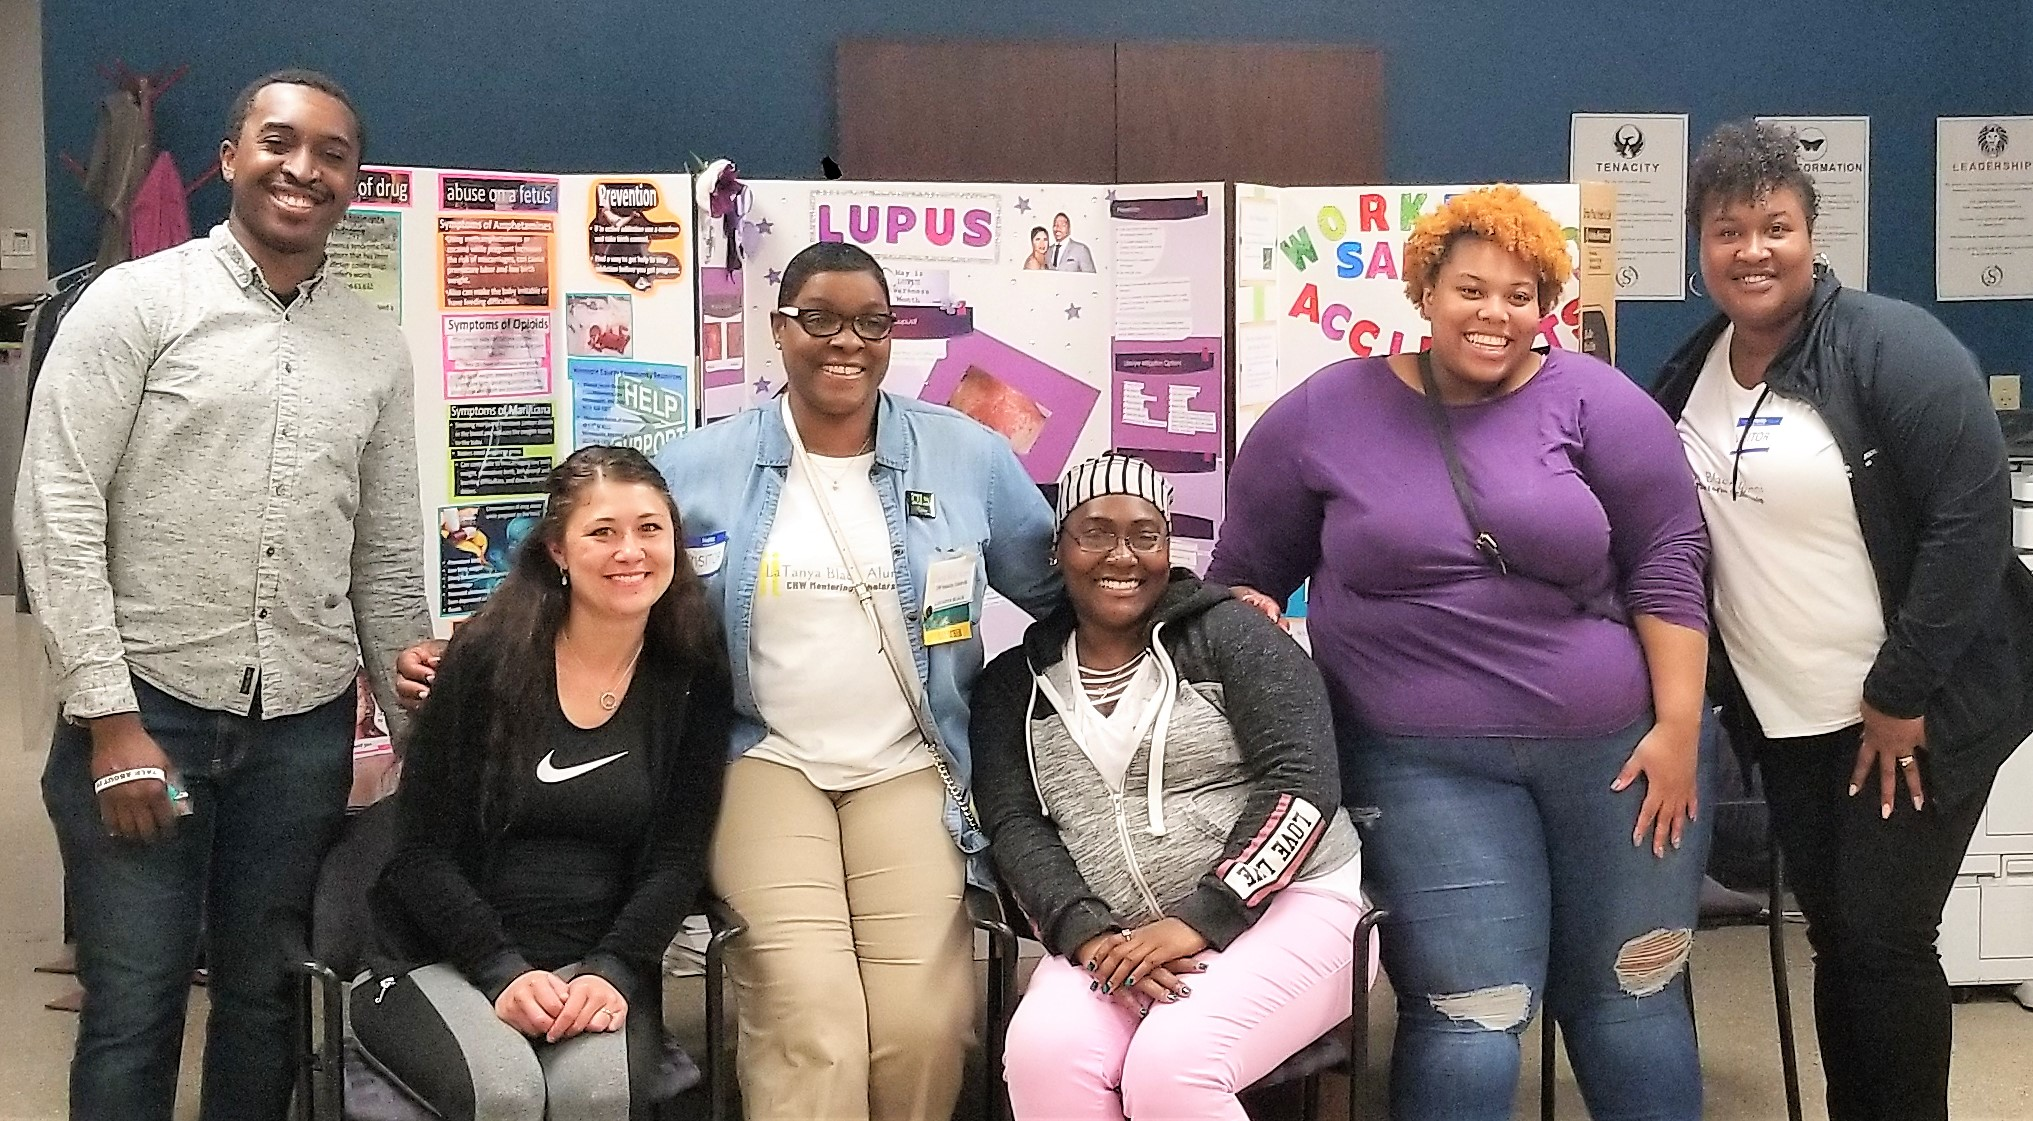 Summit Academy OIC CHW Health Fair with LBAMS Mentor and Mentees.